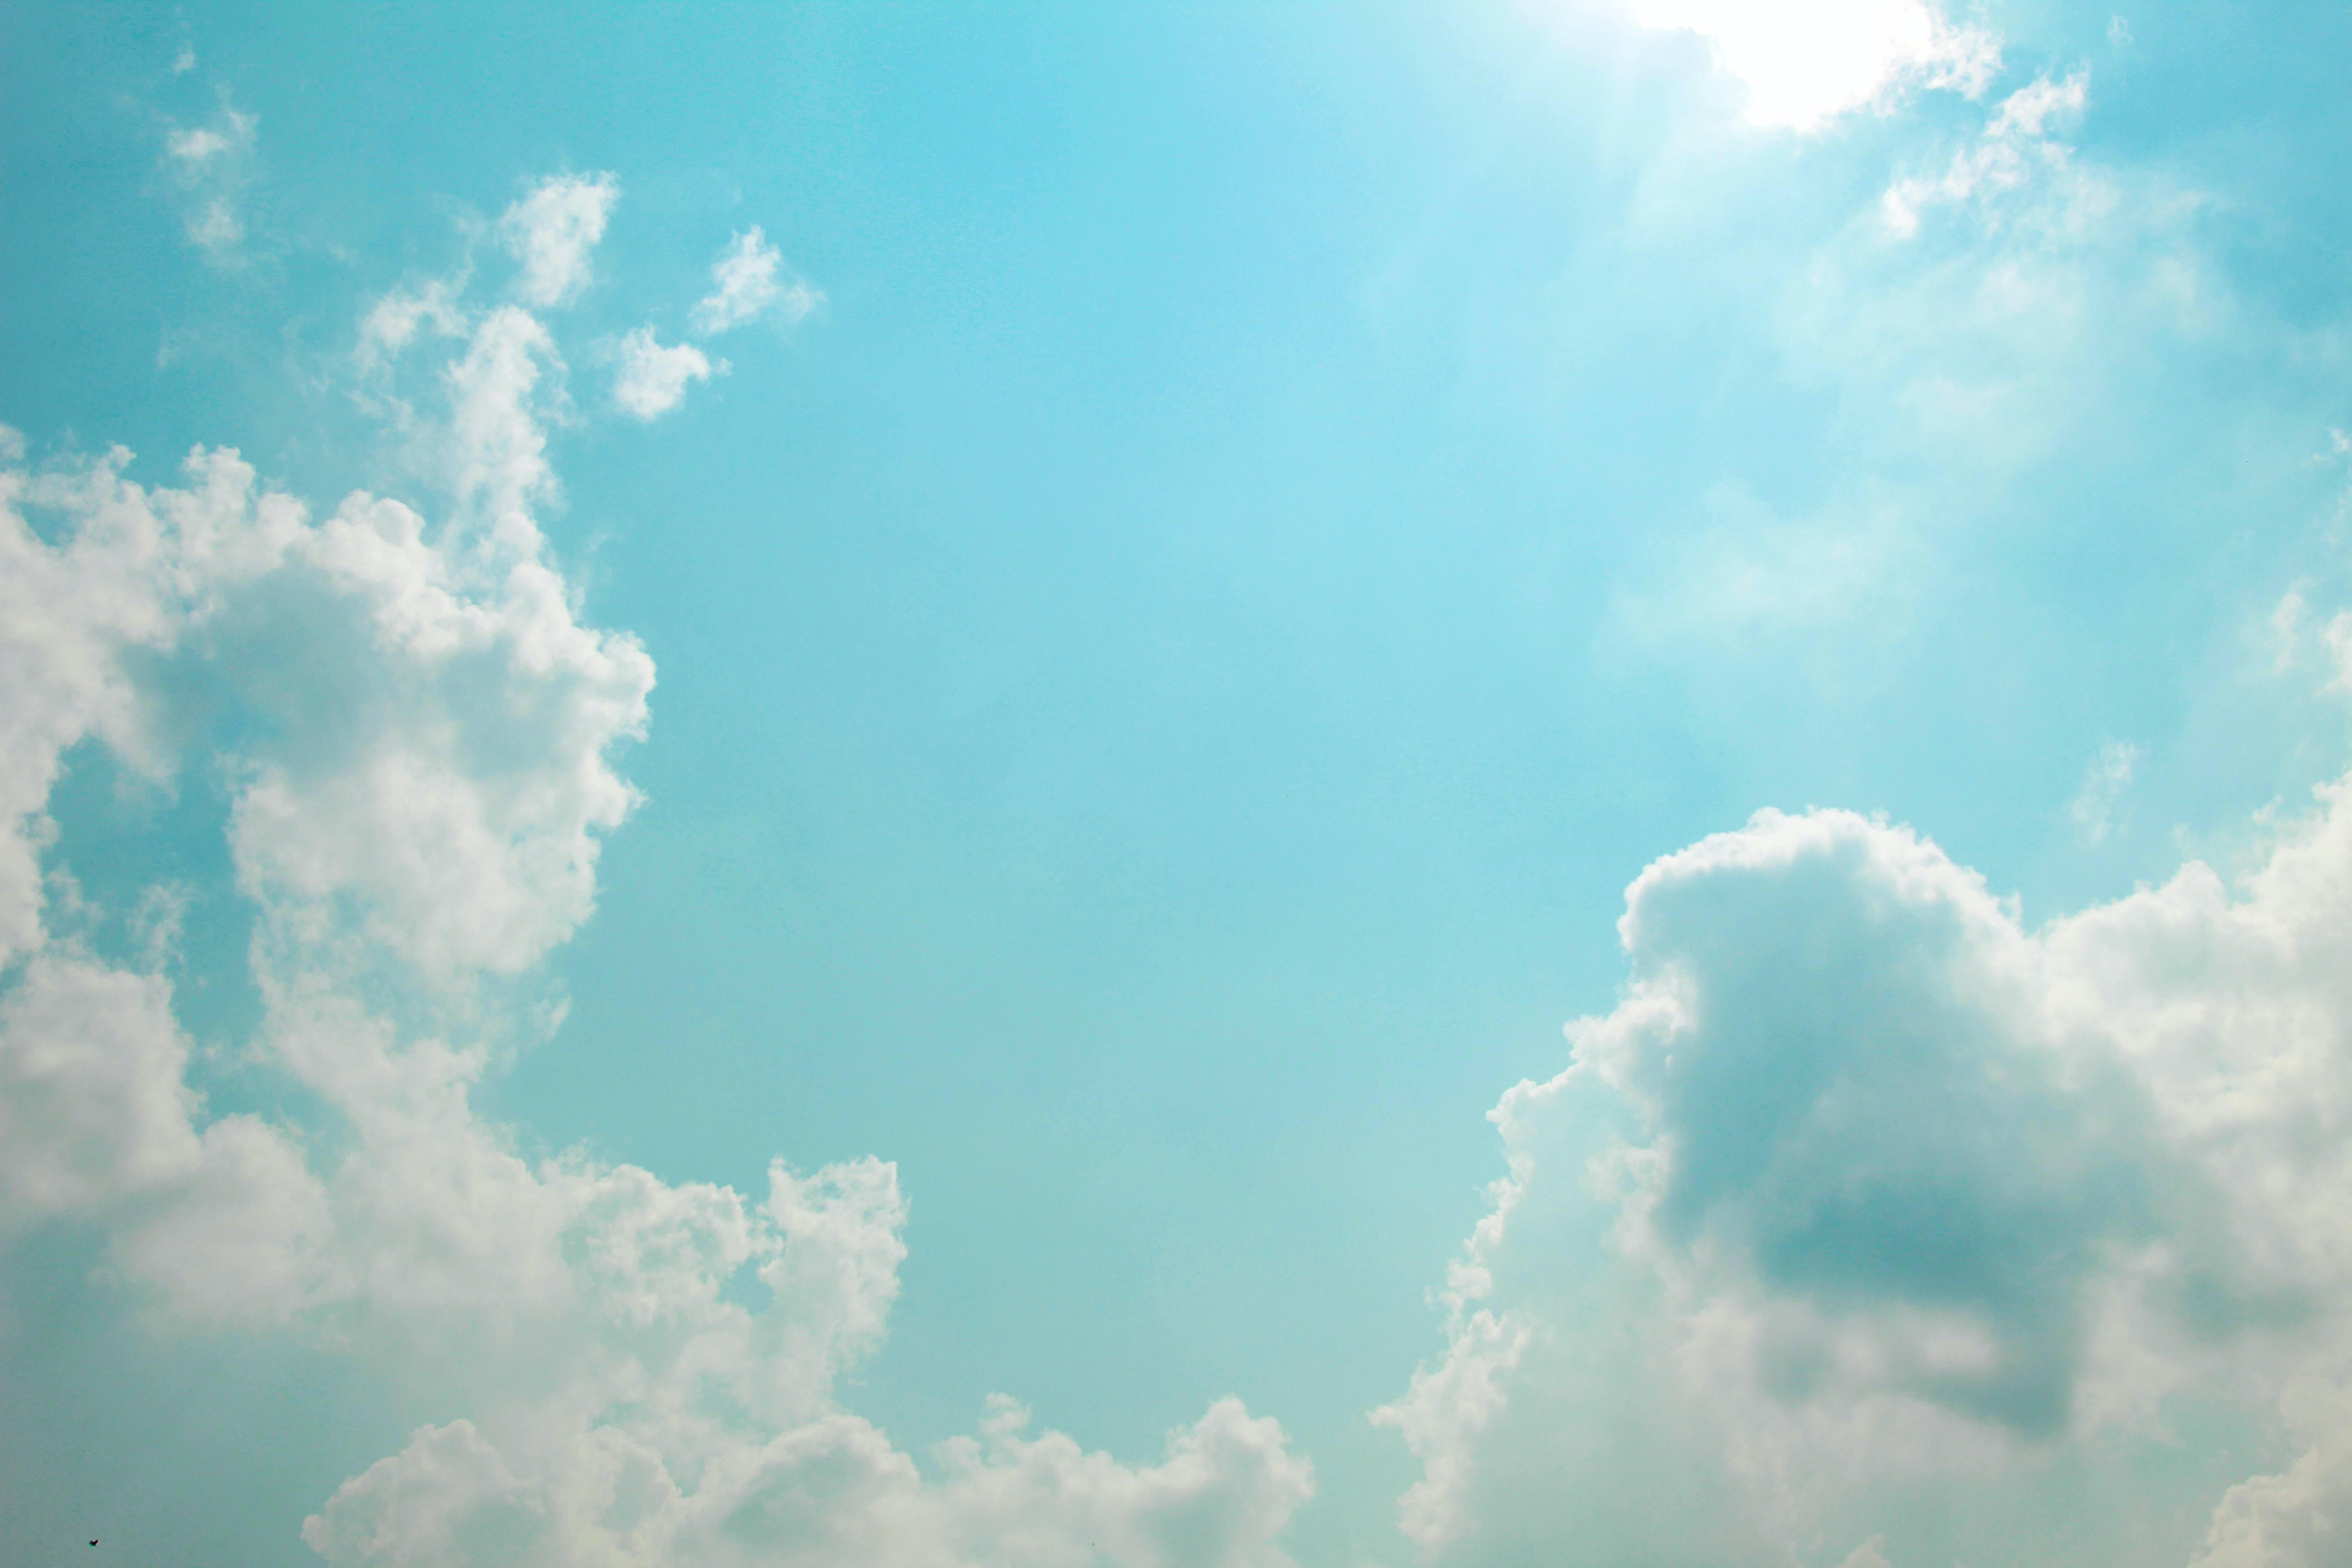 clouds under clear blue sky during daytime